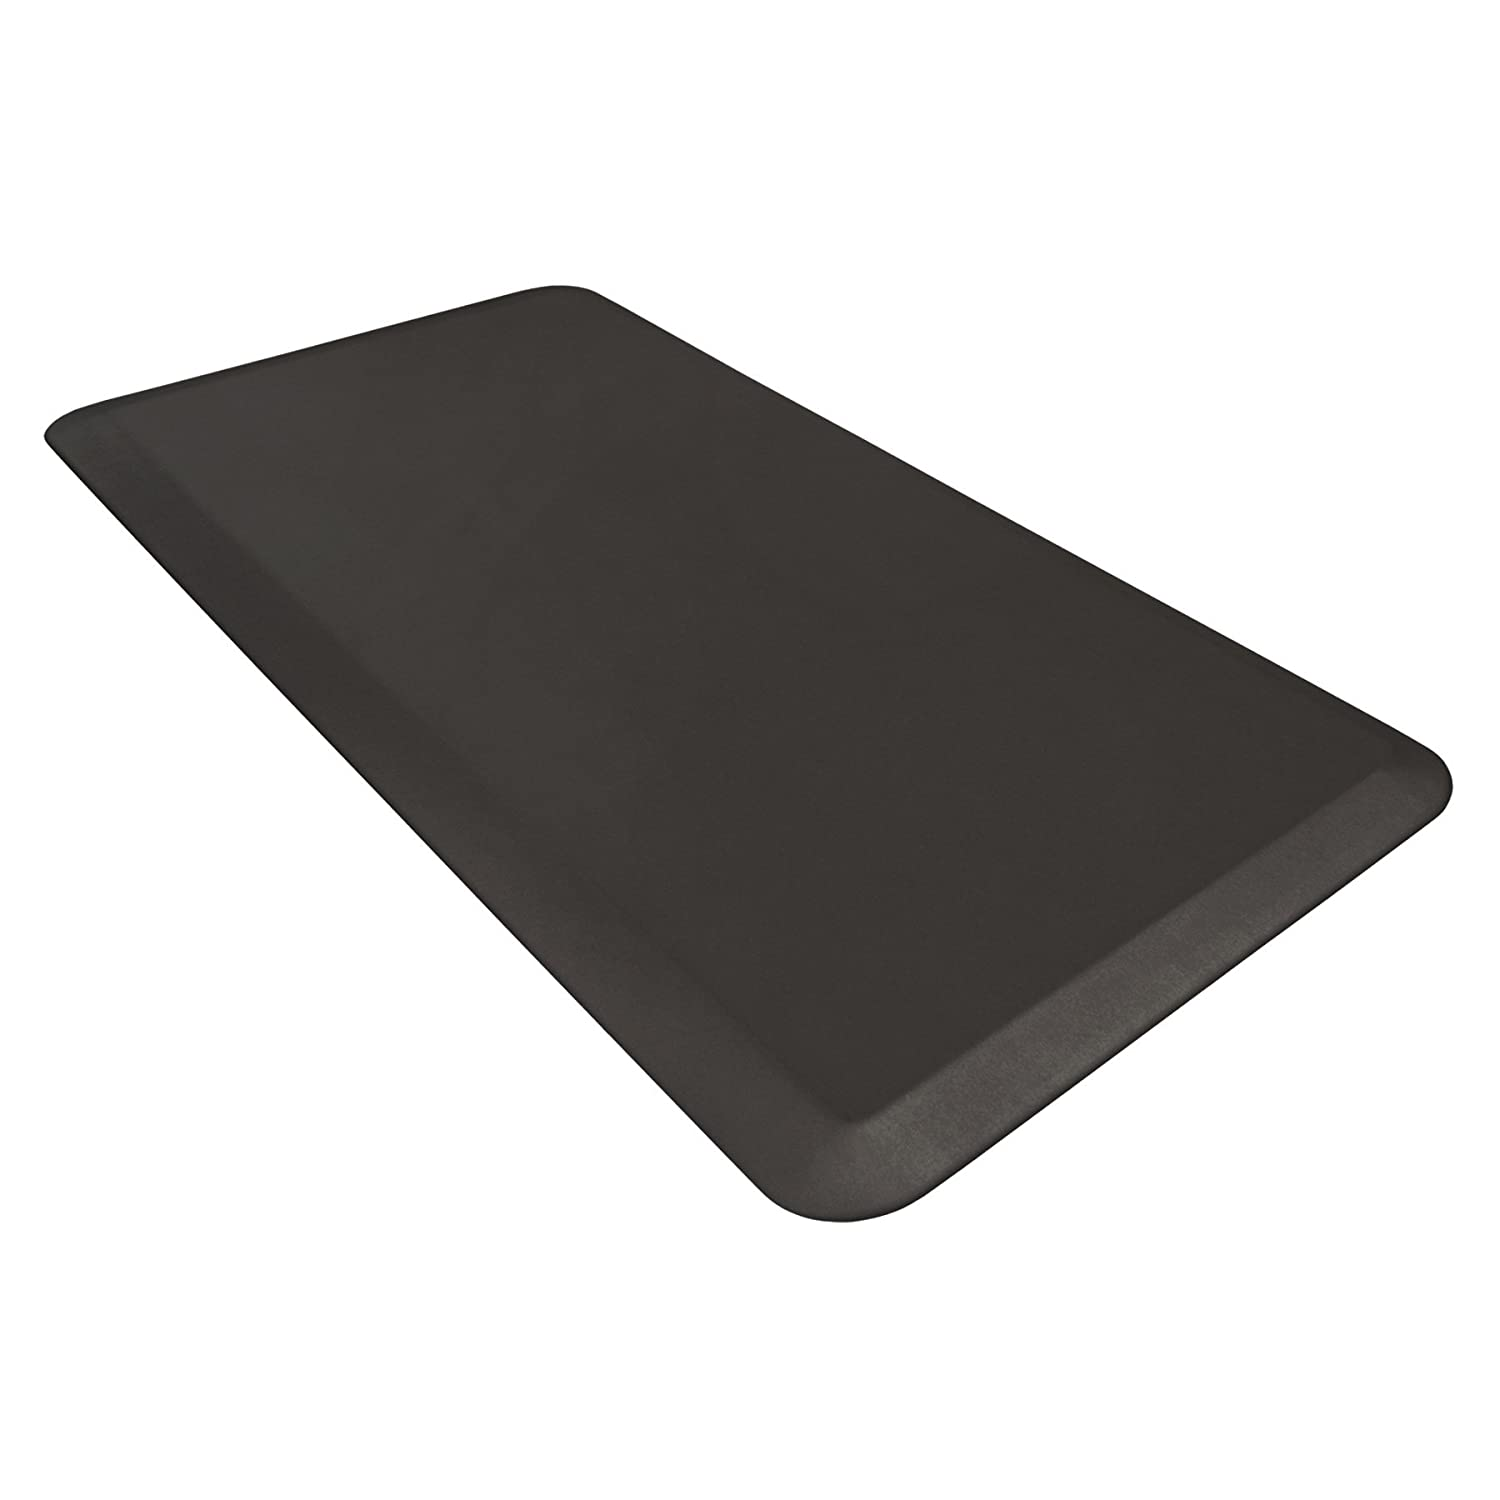 Kitchen Floor Pads Amazoncom Newlife By Gelpro Professional Grade Anti Fatigue Mat